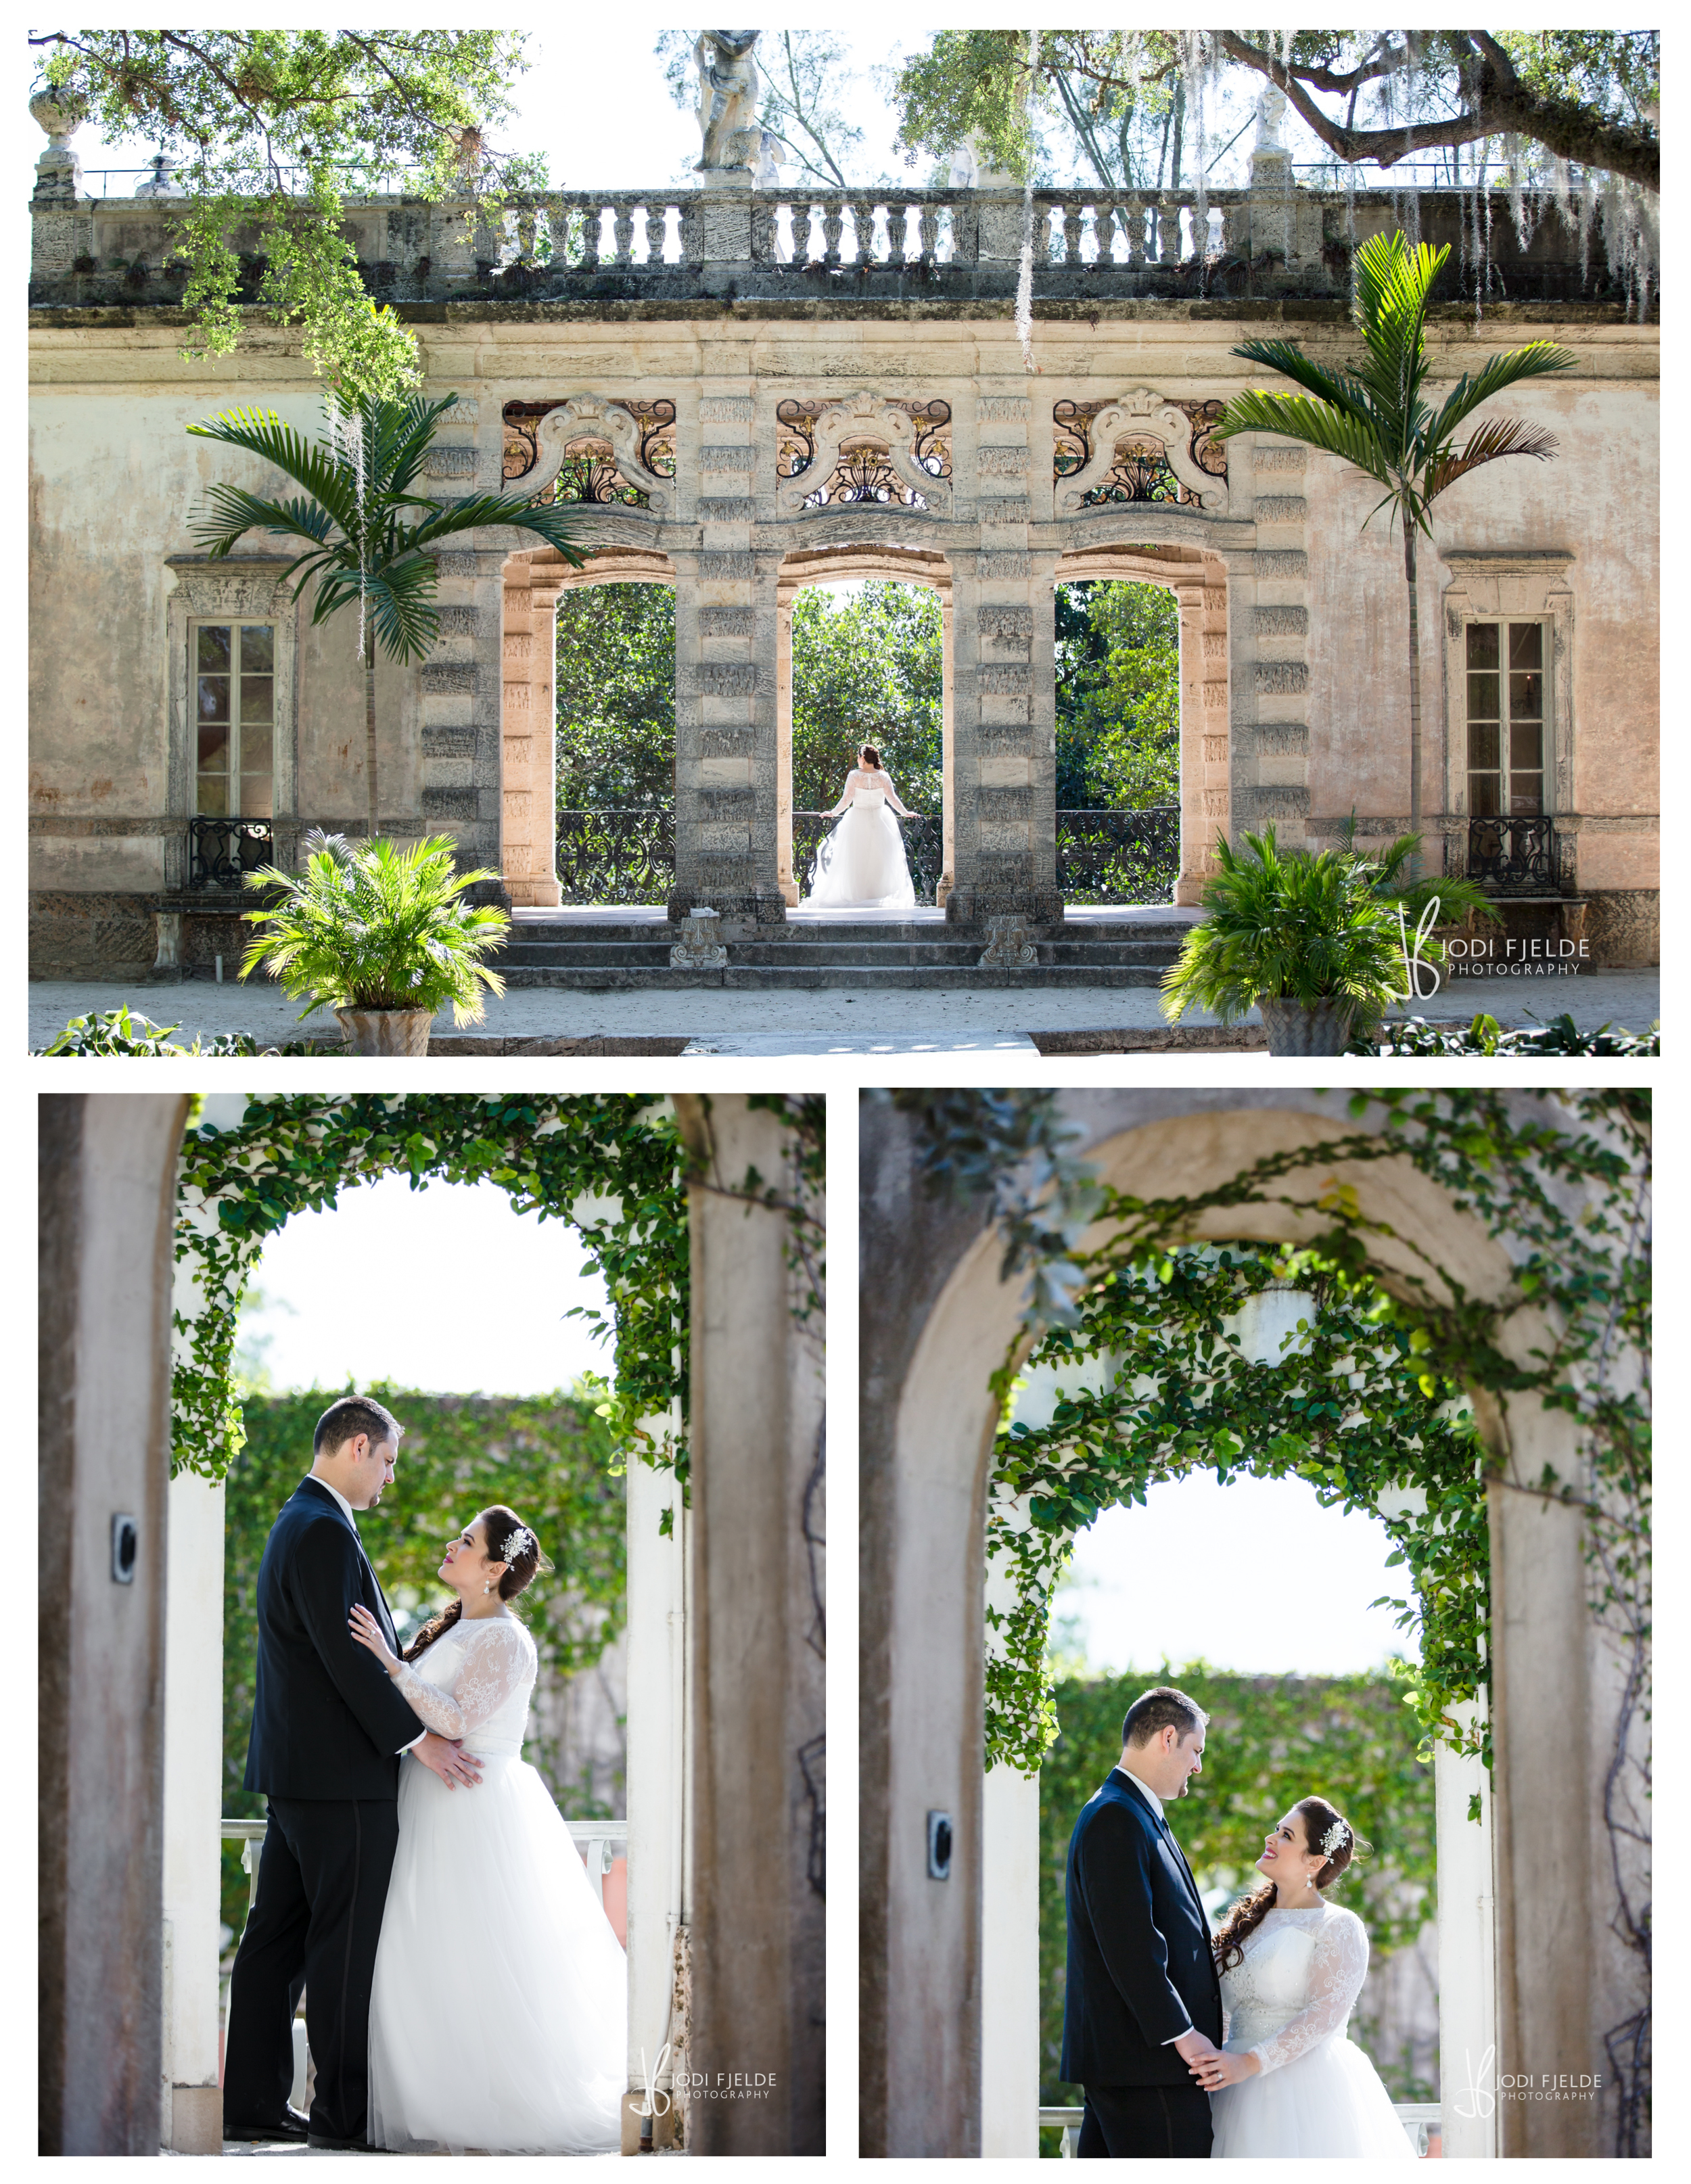 Vizcaya_Miami_Florida_Bridal_Wedding_Portraits_Jodi_Fjelde_Photography-7.jpg